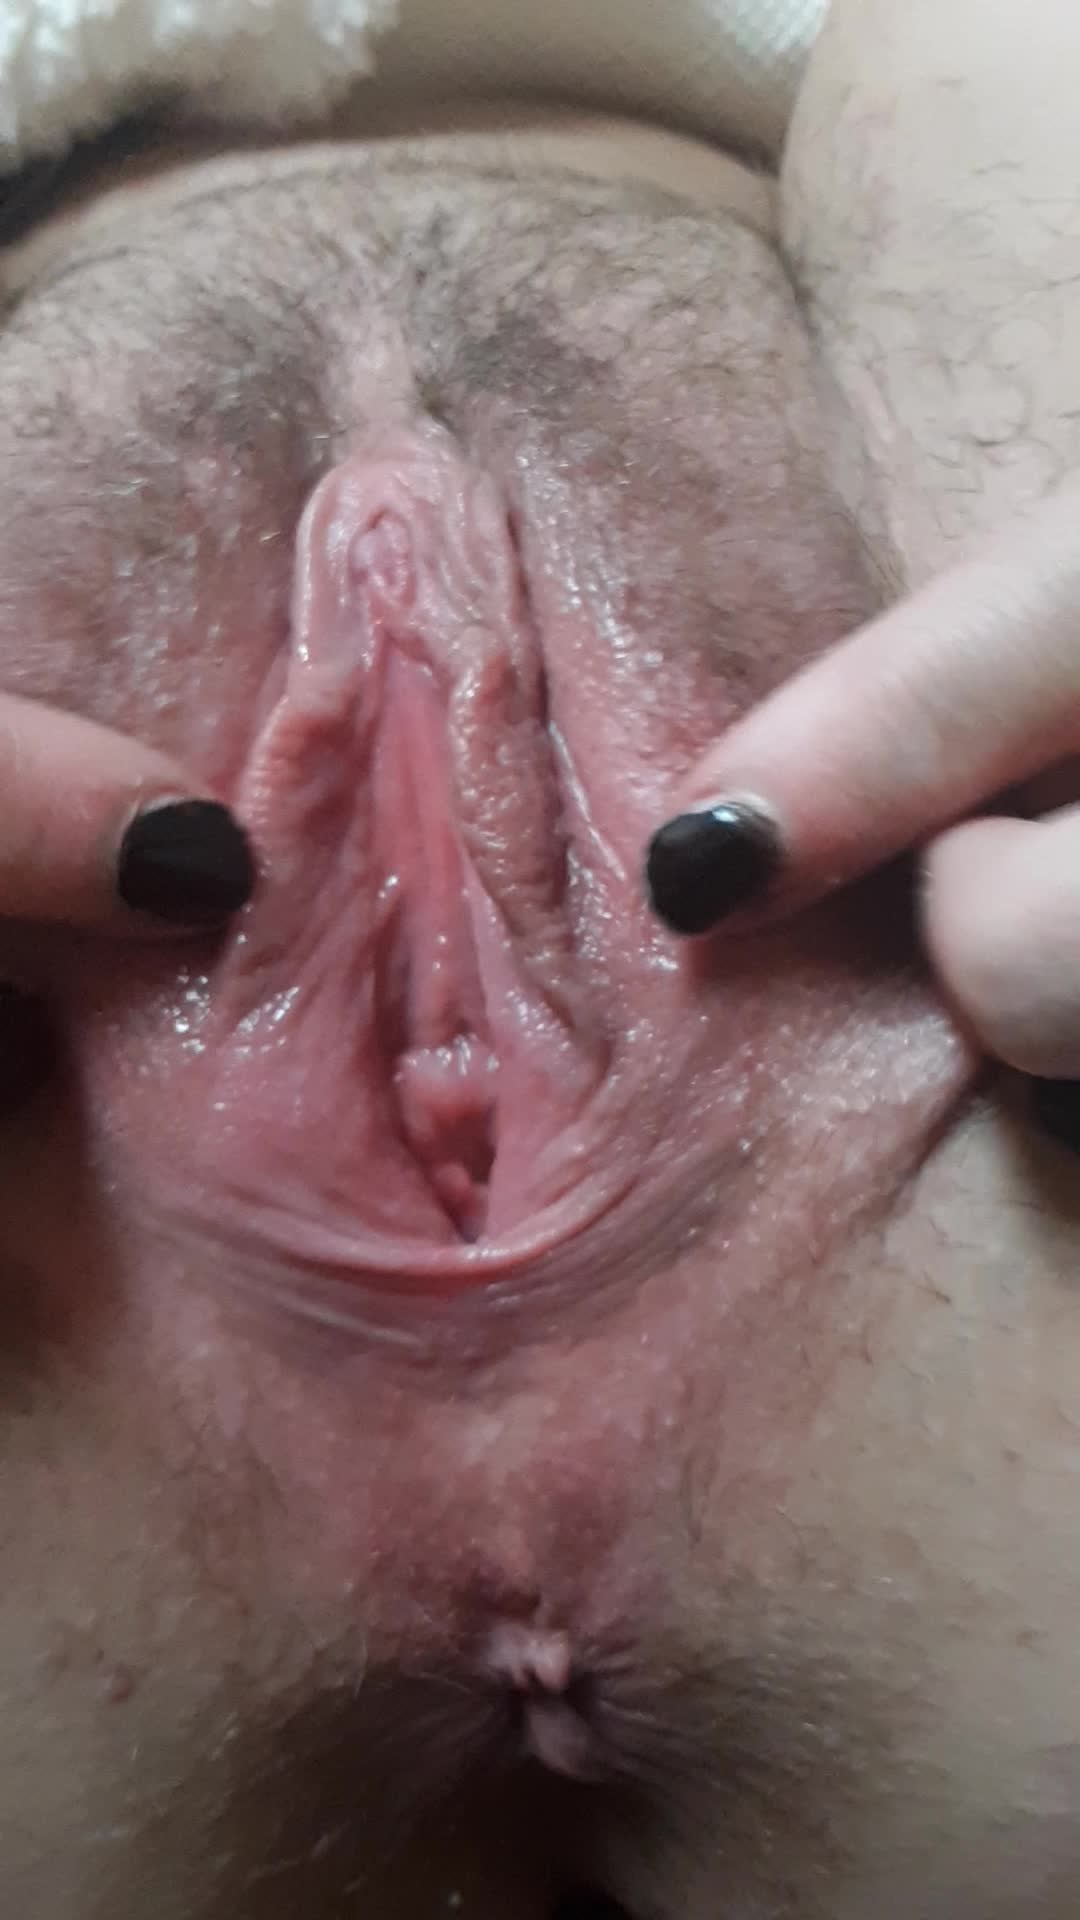 Needing this hole illed 💦🍆